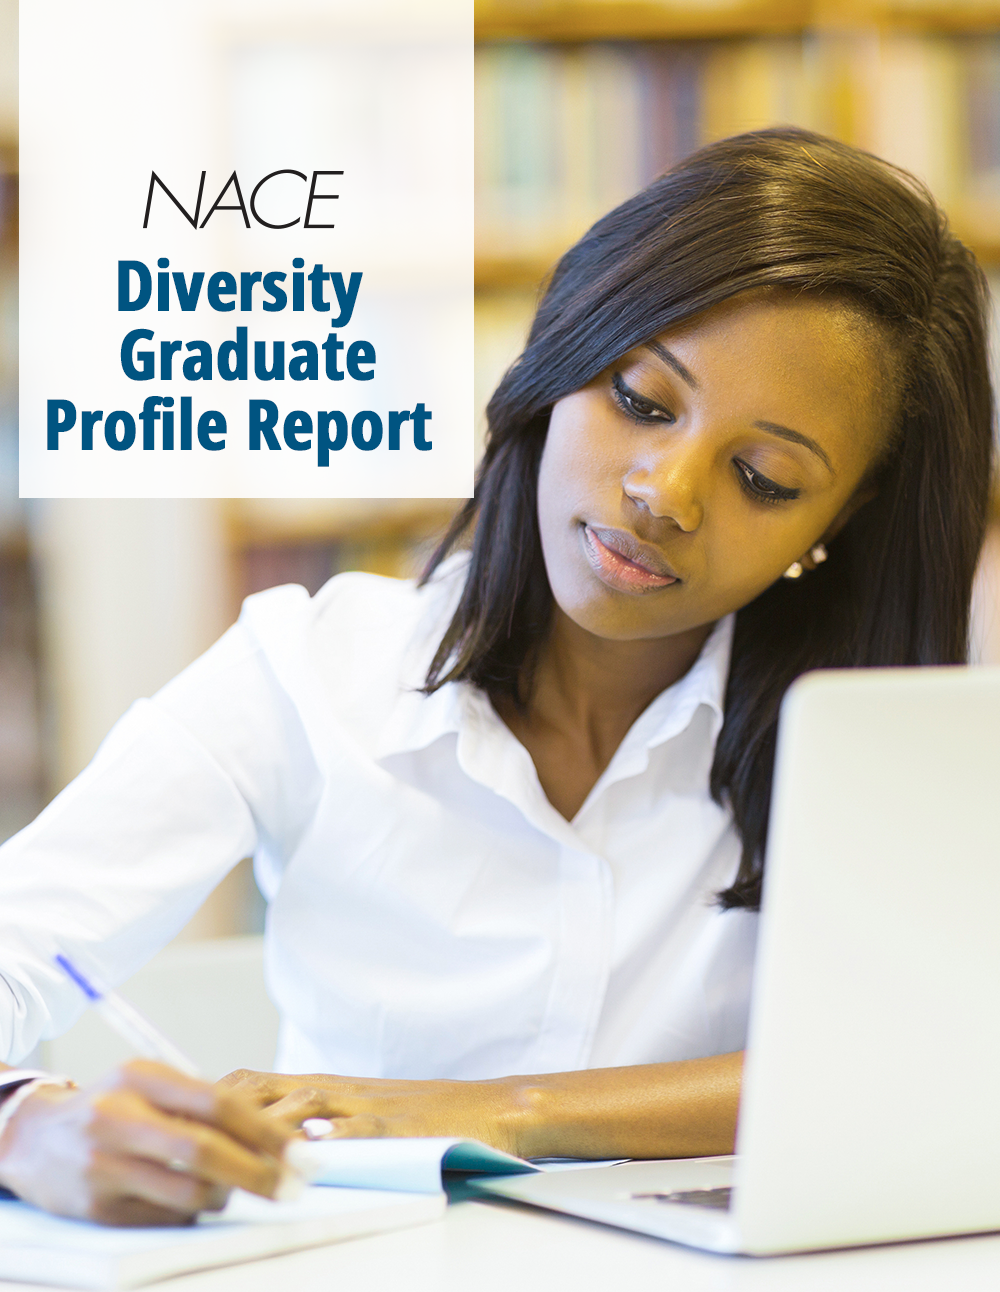 NACE Diversity Graduate Profile Report: Math/Humanities/Social Science